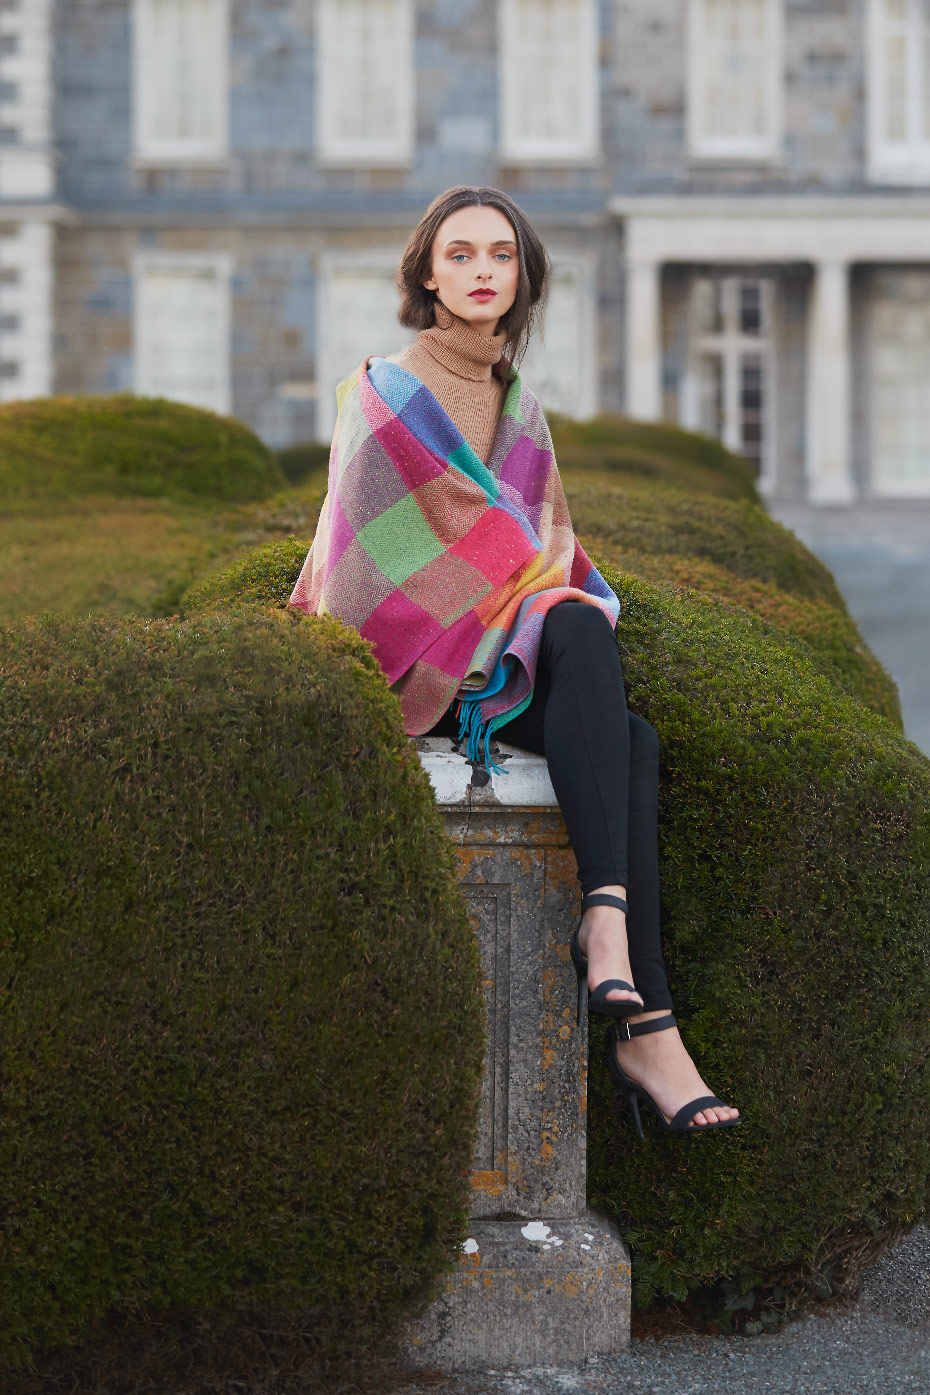 Stacey Van Berkel Photography I Carton House Fashion Shoot I Avoca Ireland Blanket I Kildare, Ireland